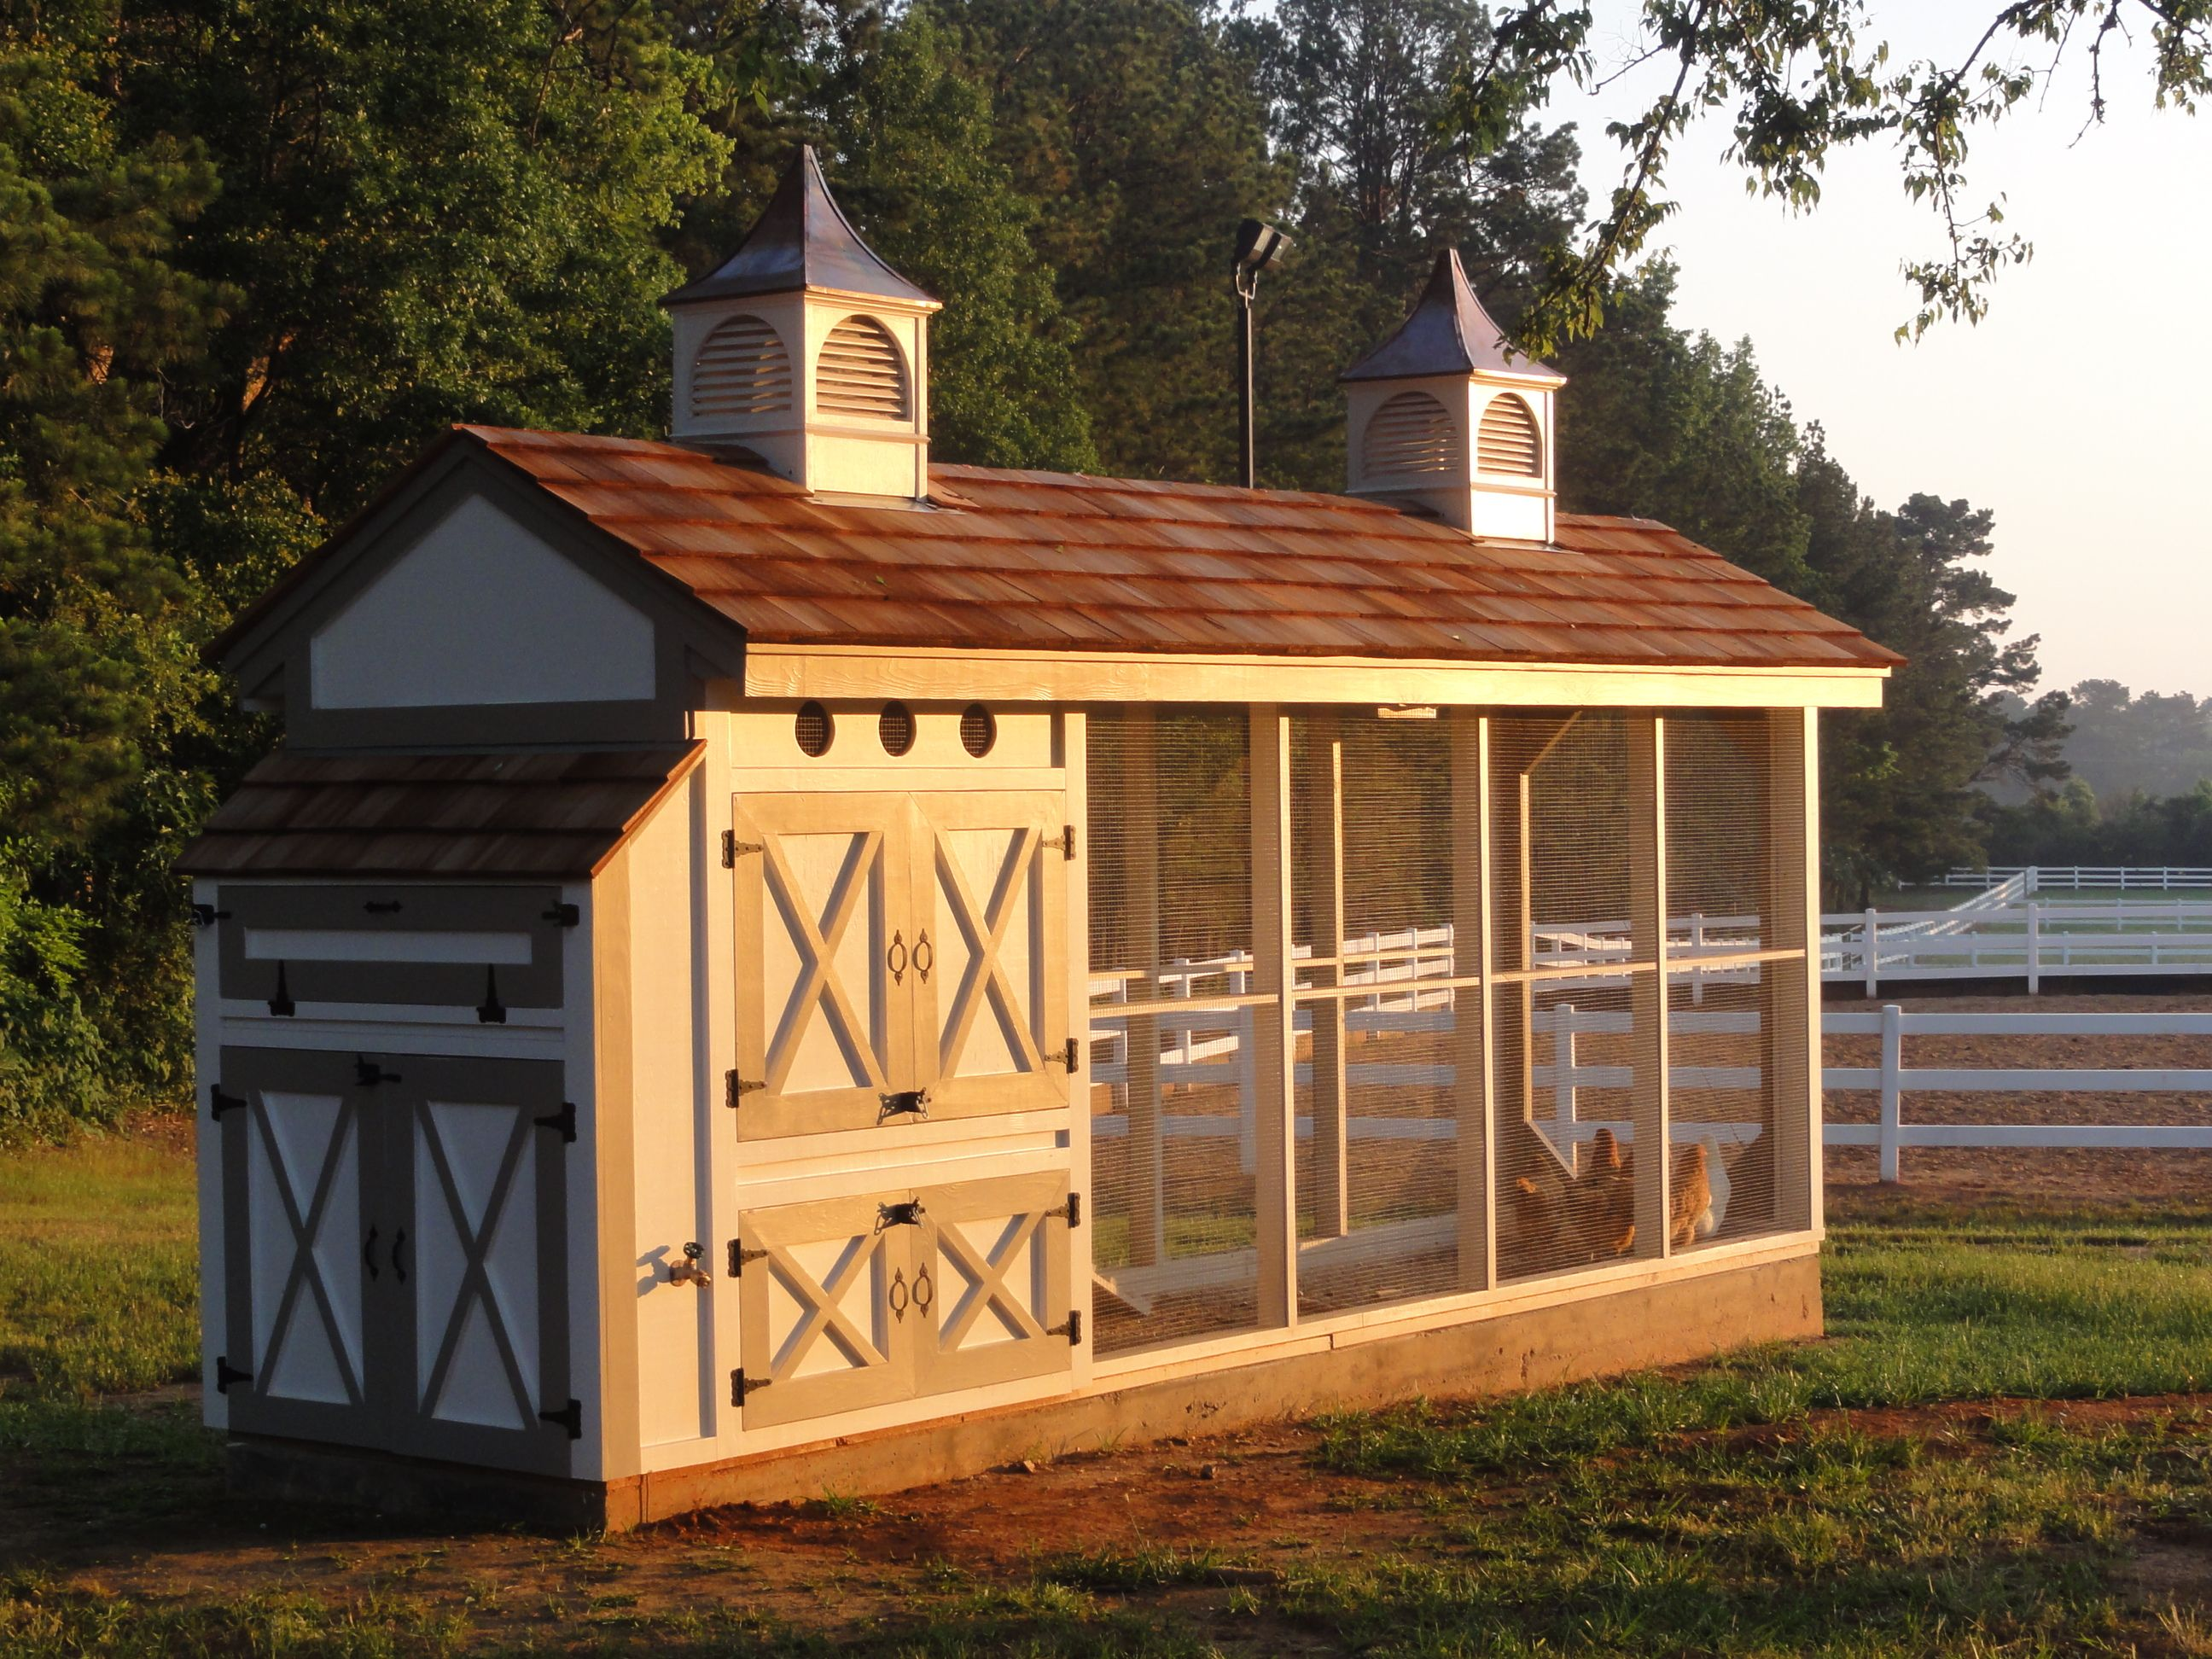 Pin By Teri Firtos On Chicken Coops Fancy Chicken Coop Chickens Backyard Chicken Coop